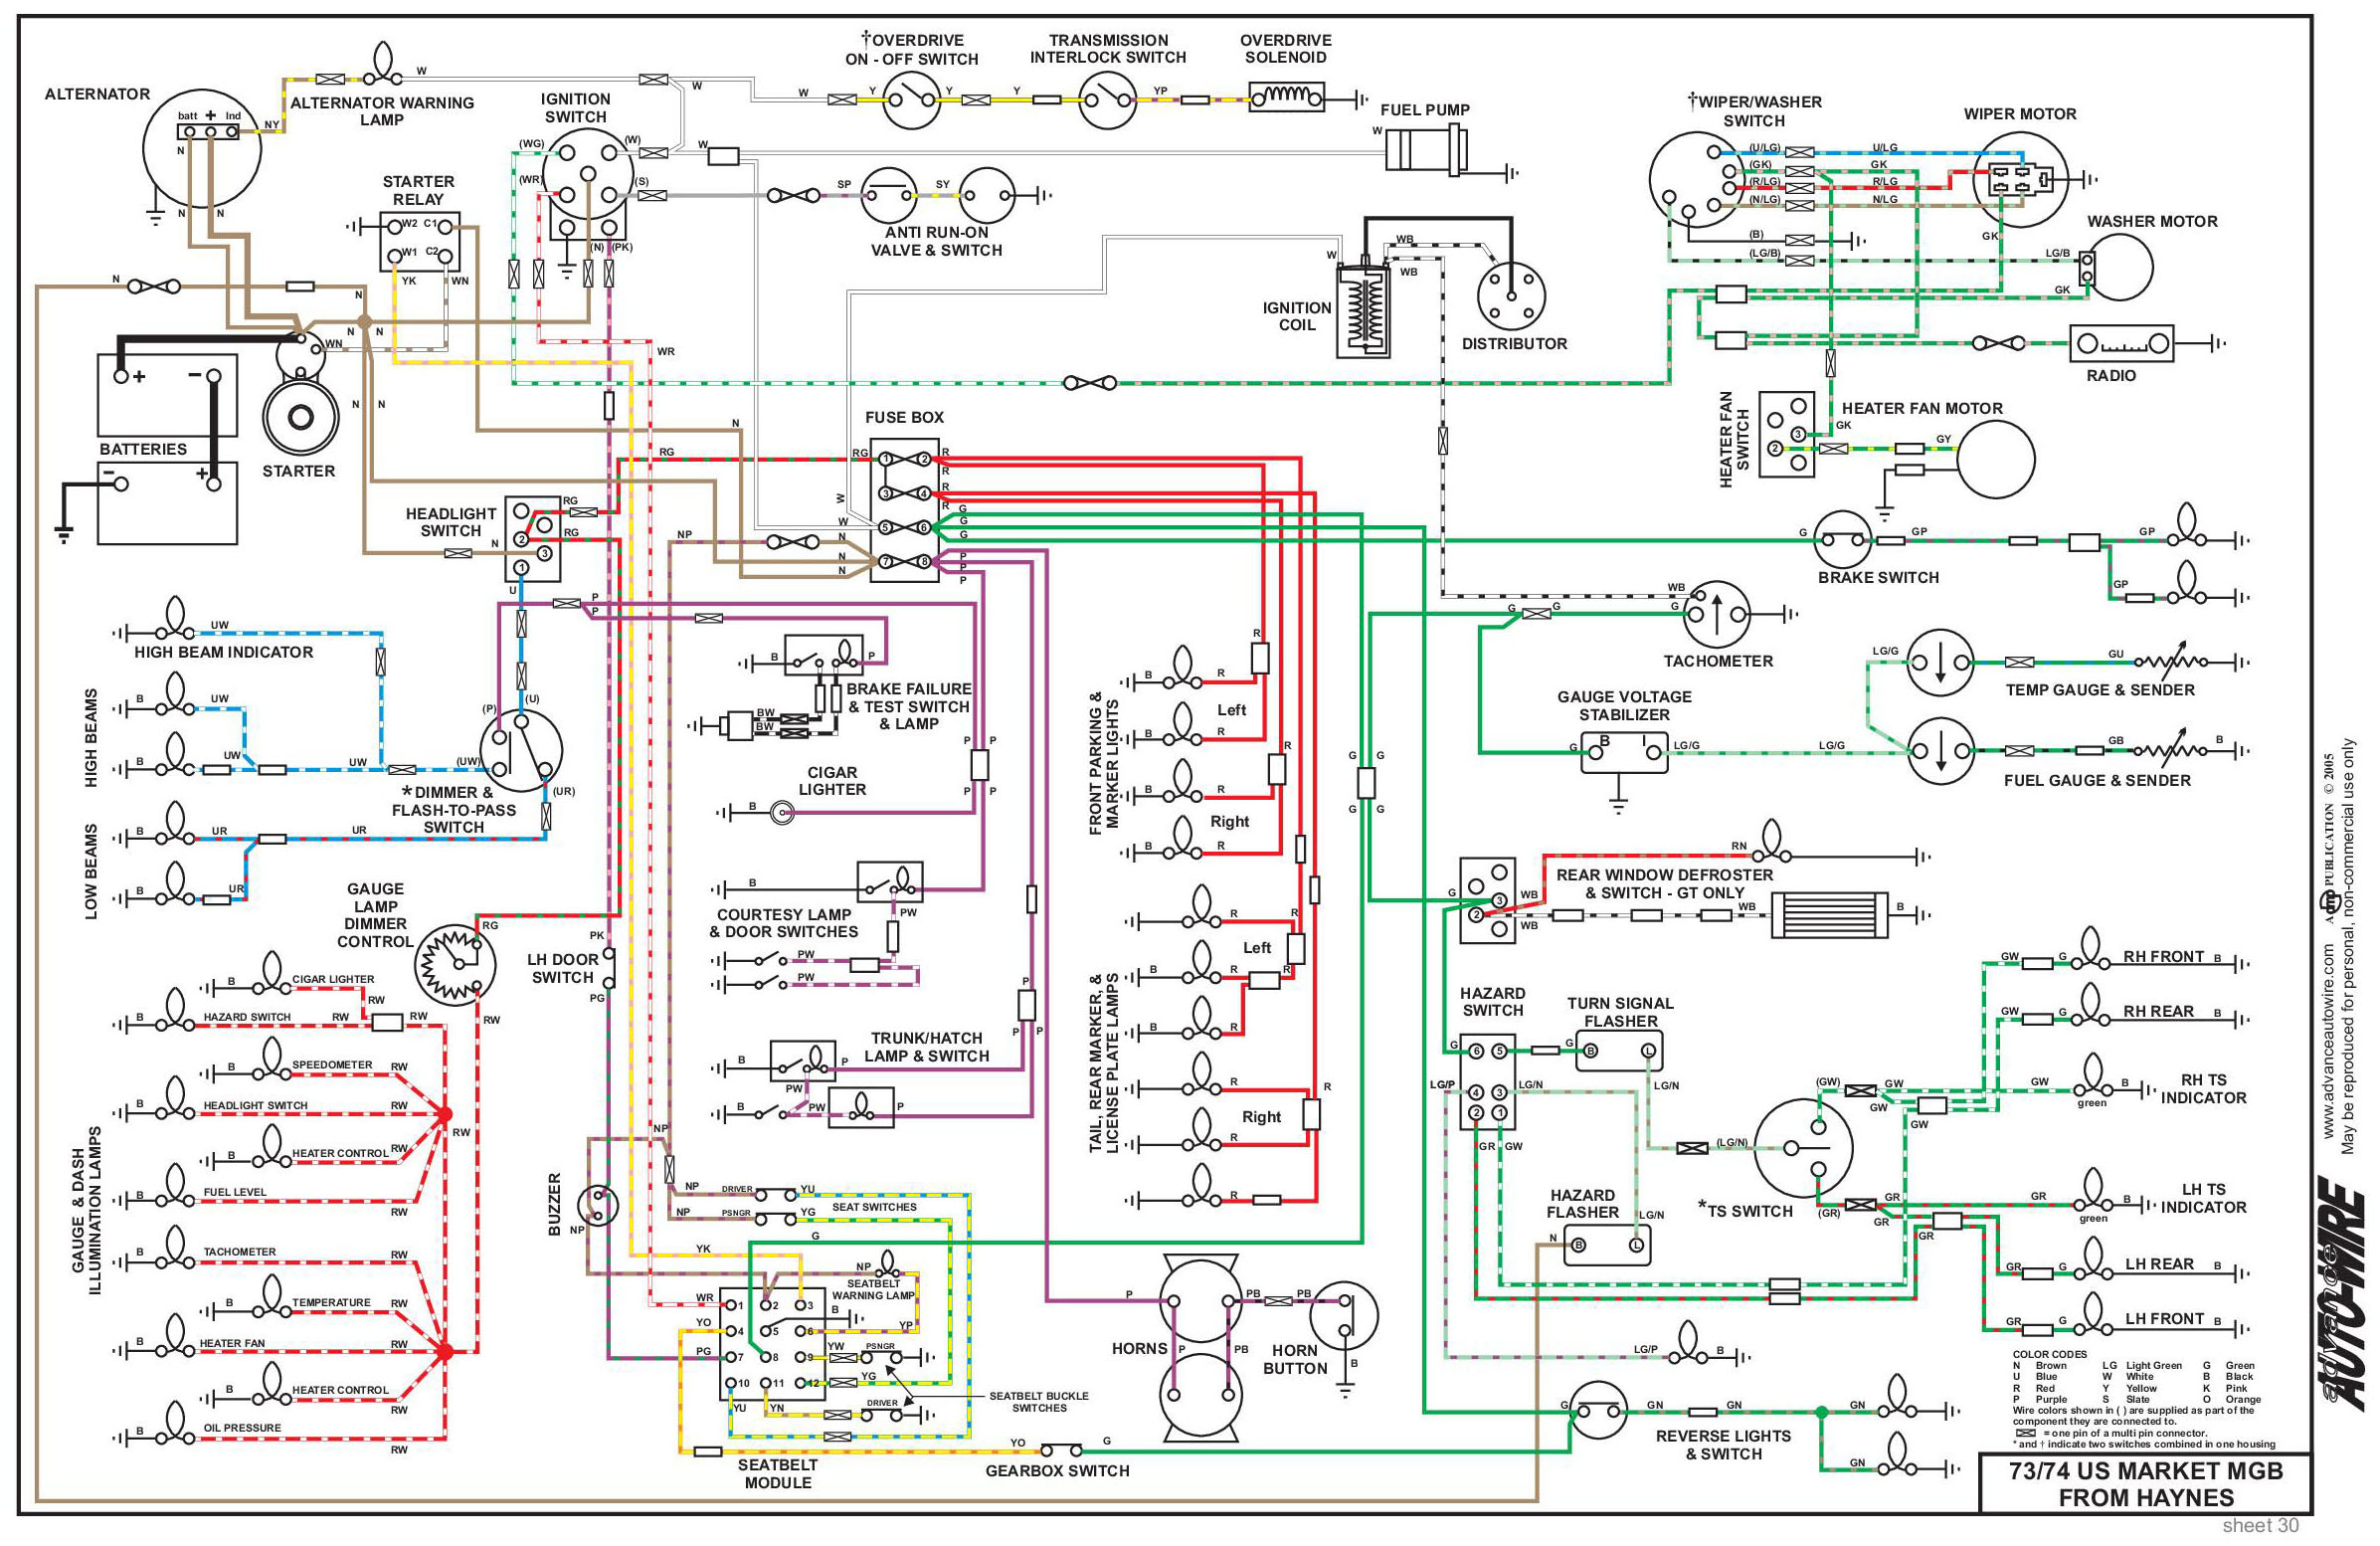 Electrical System Besides Turn Signal Wiring Diagram On Home Lighting Circuit 73 74 Us Market Mgb